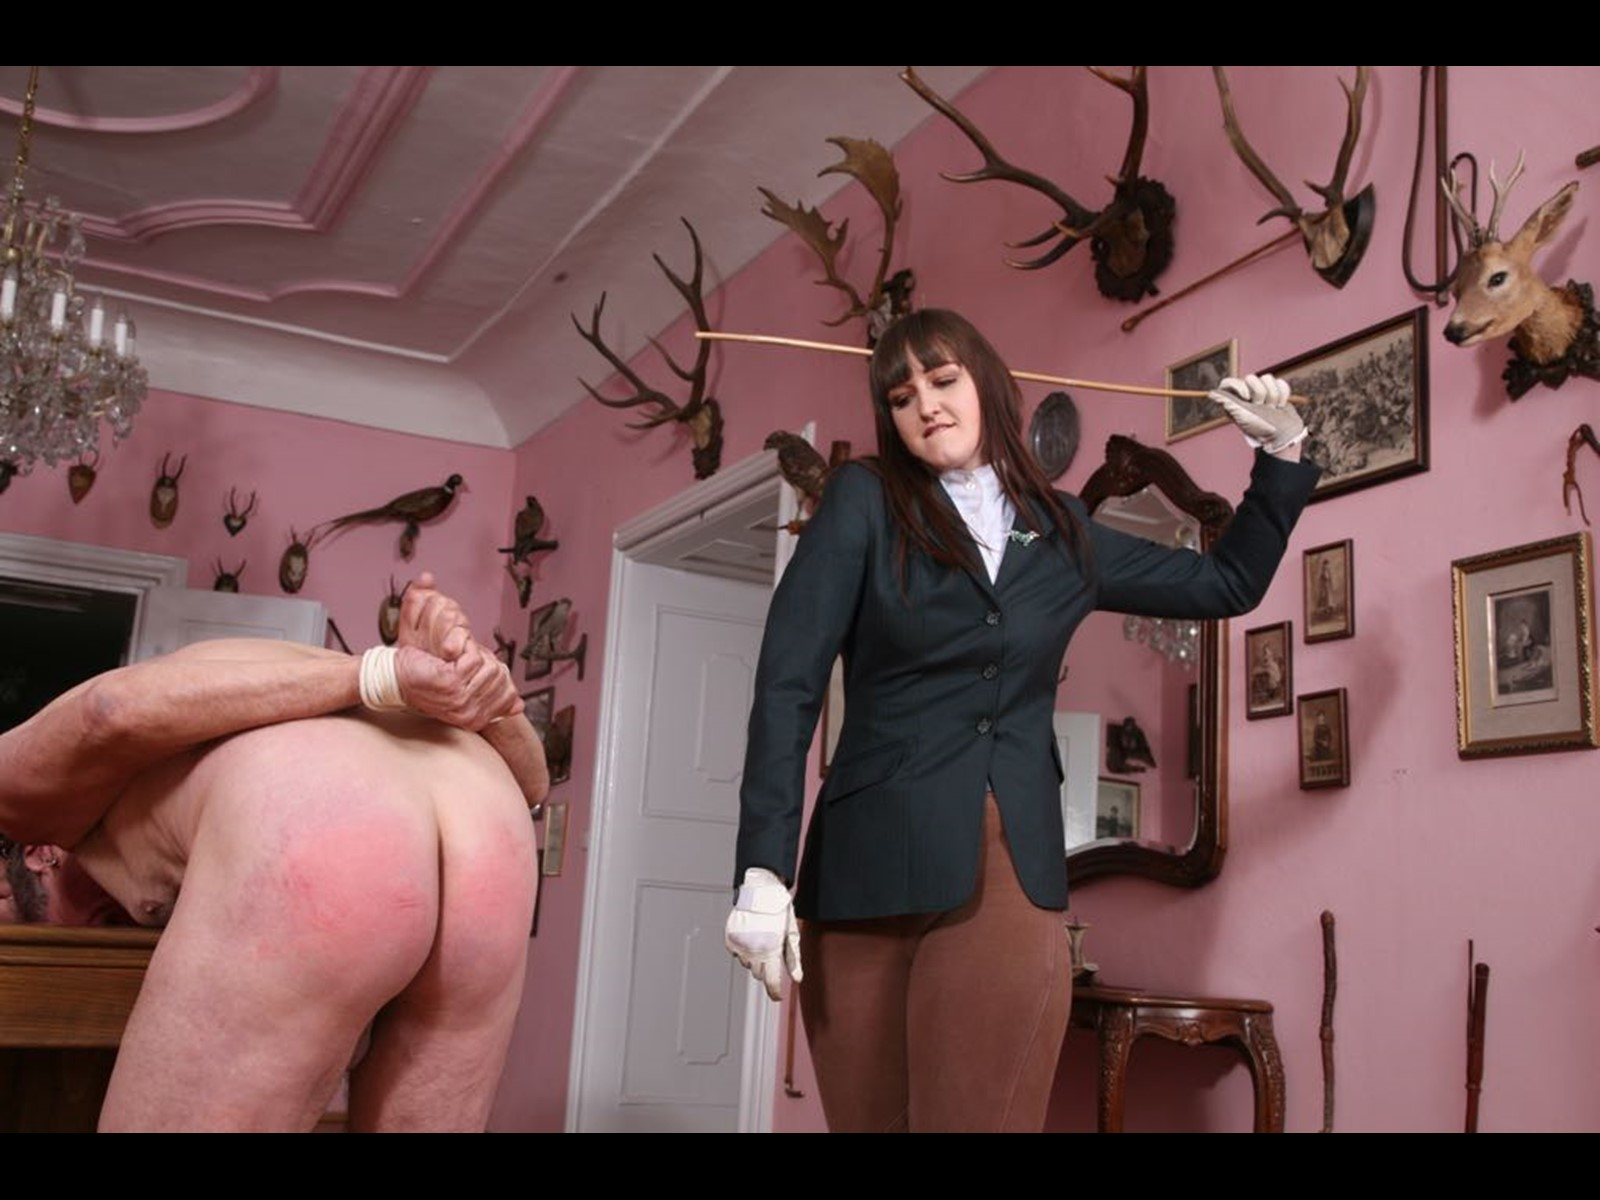 Caning a slave on the billiard table at the Other World Kingdom in Cz with Hunting Lodge and Taxidermy. Hard Caning